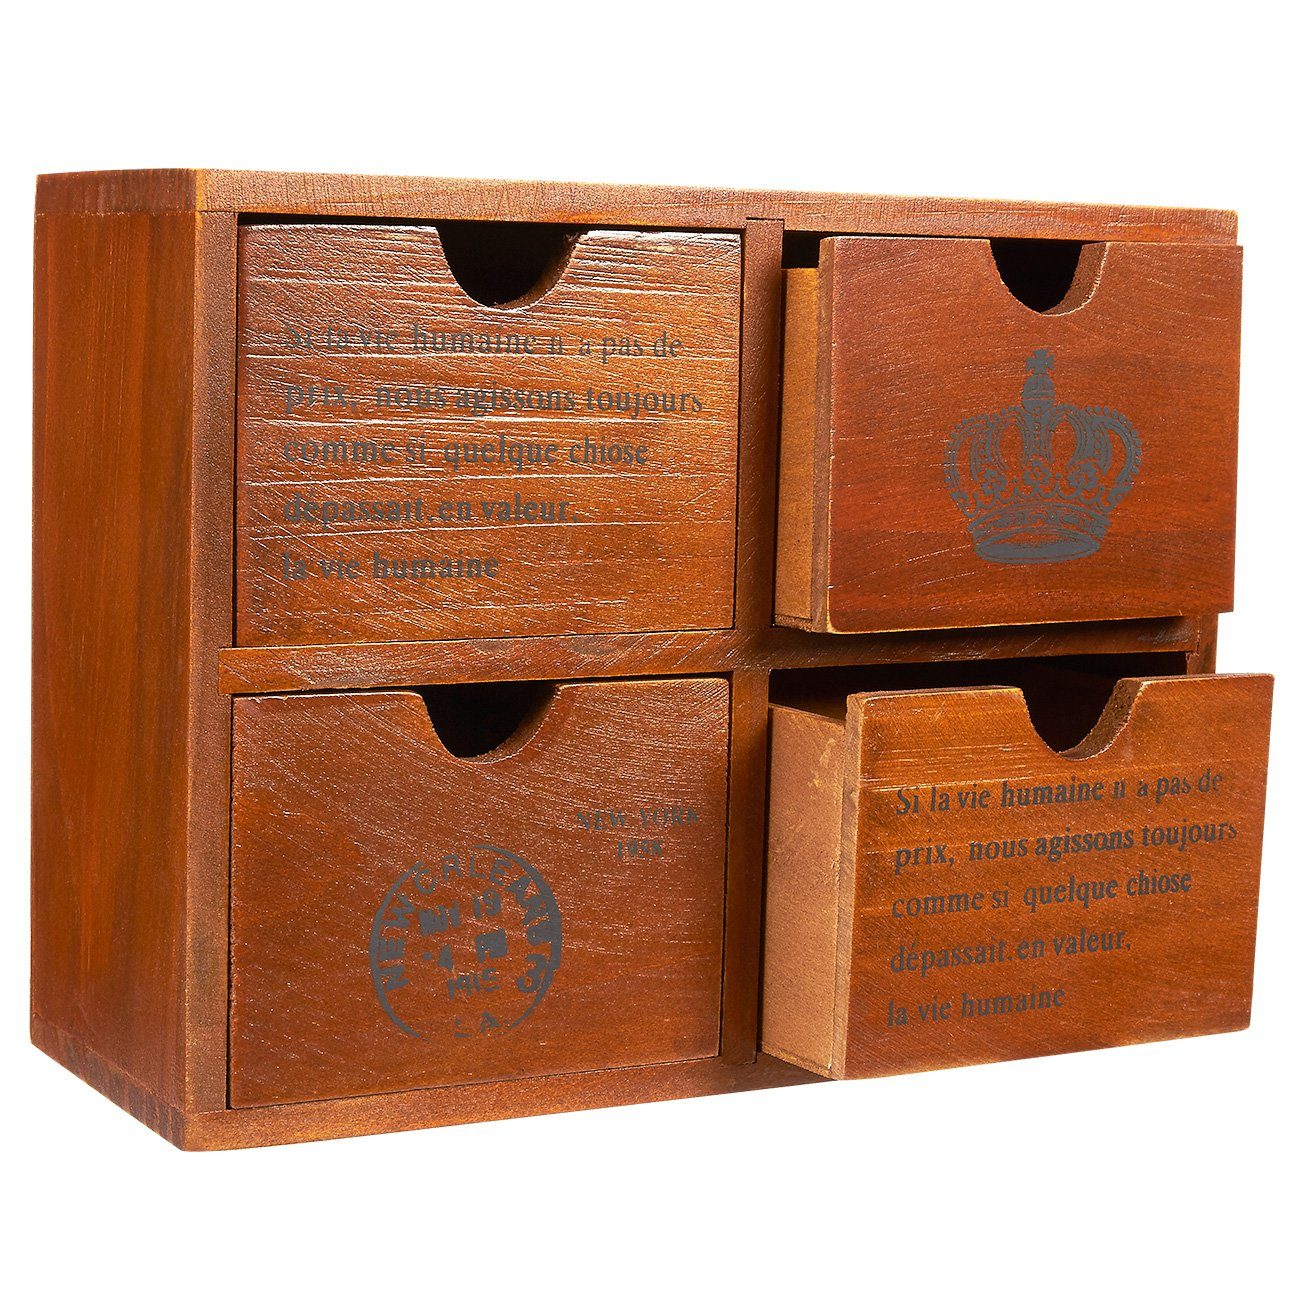 Set of 4 Drawer Wooden Storage Organizer - Small Desktop Decorative Cabinet Boxes for Craft, Vintage Jewelry Organizer - Chic French and Crown Design - Brown, 10.25 x 3.8 x 7.75 inches by Juvale